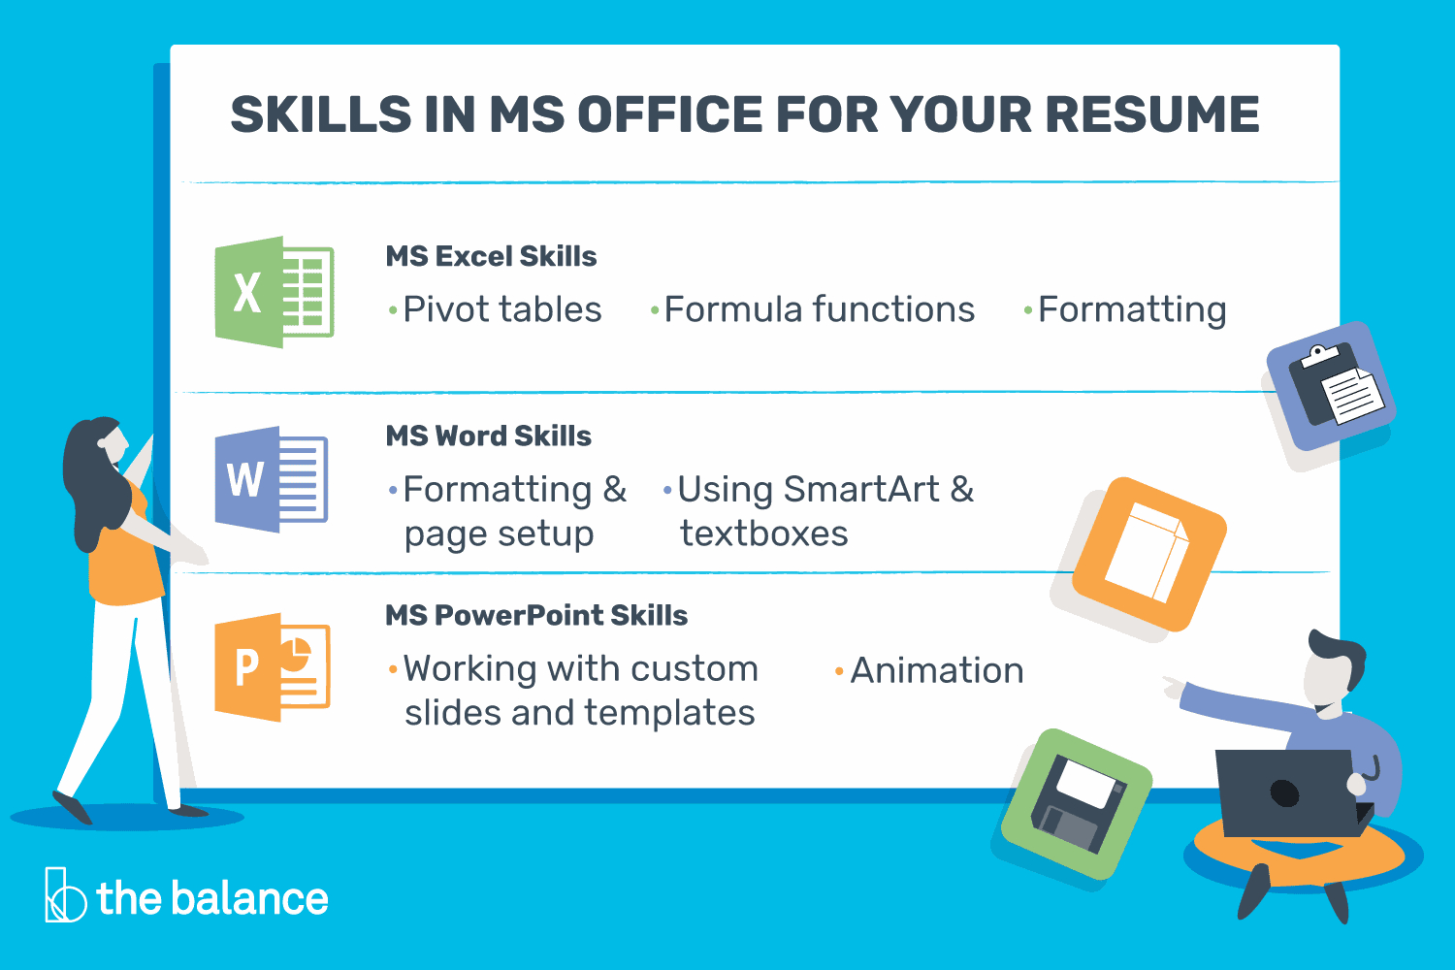 Basic Spreadsheet Proficiency With Microsoft Excel Intended For Microsoft Office Skills For Resumes